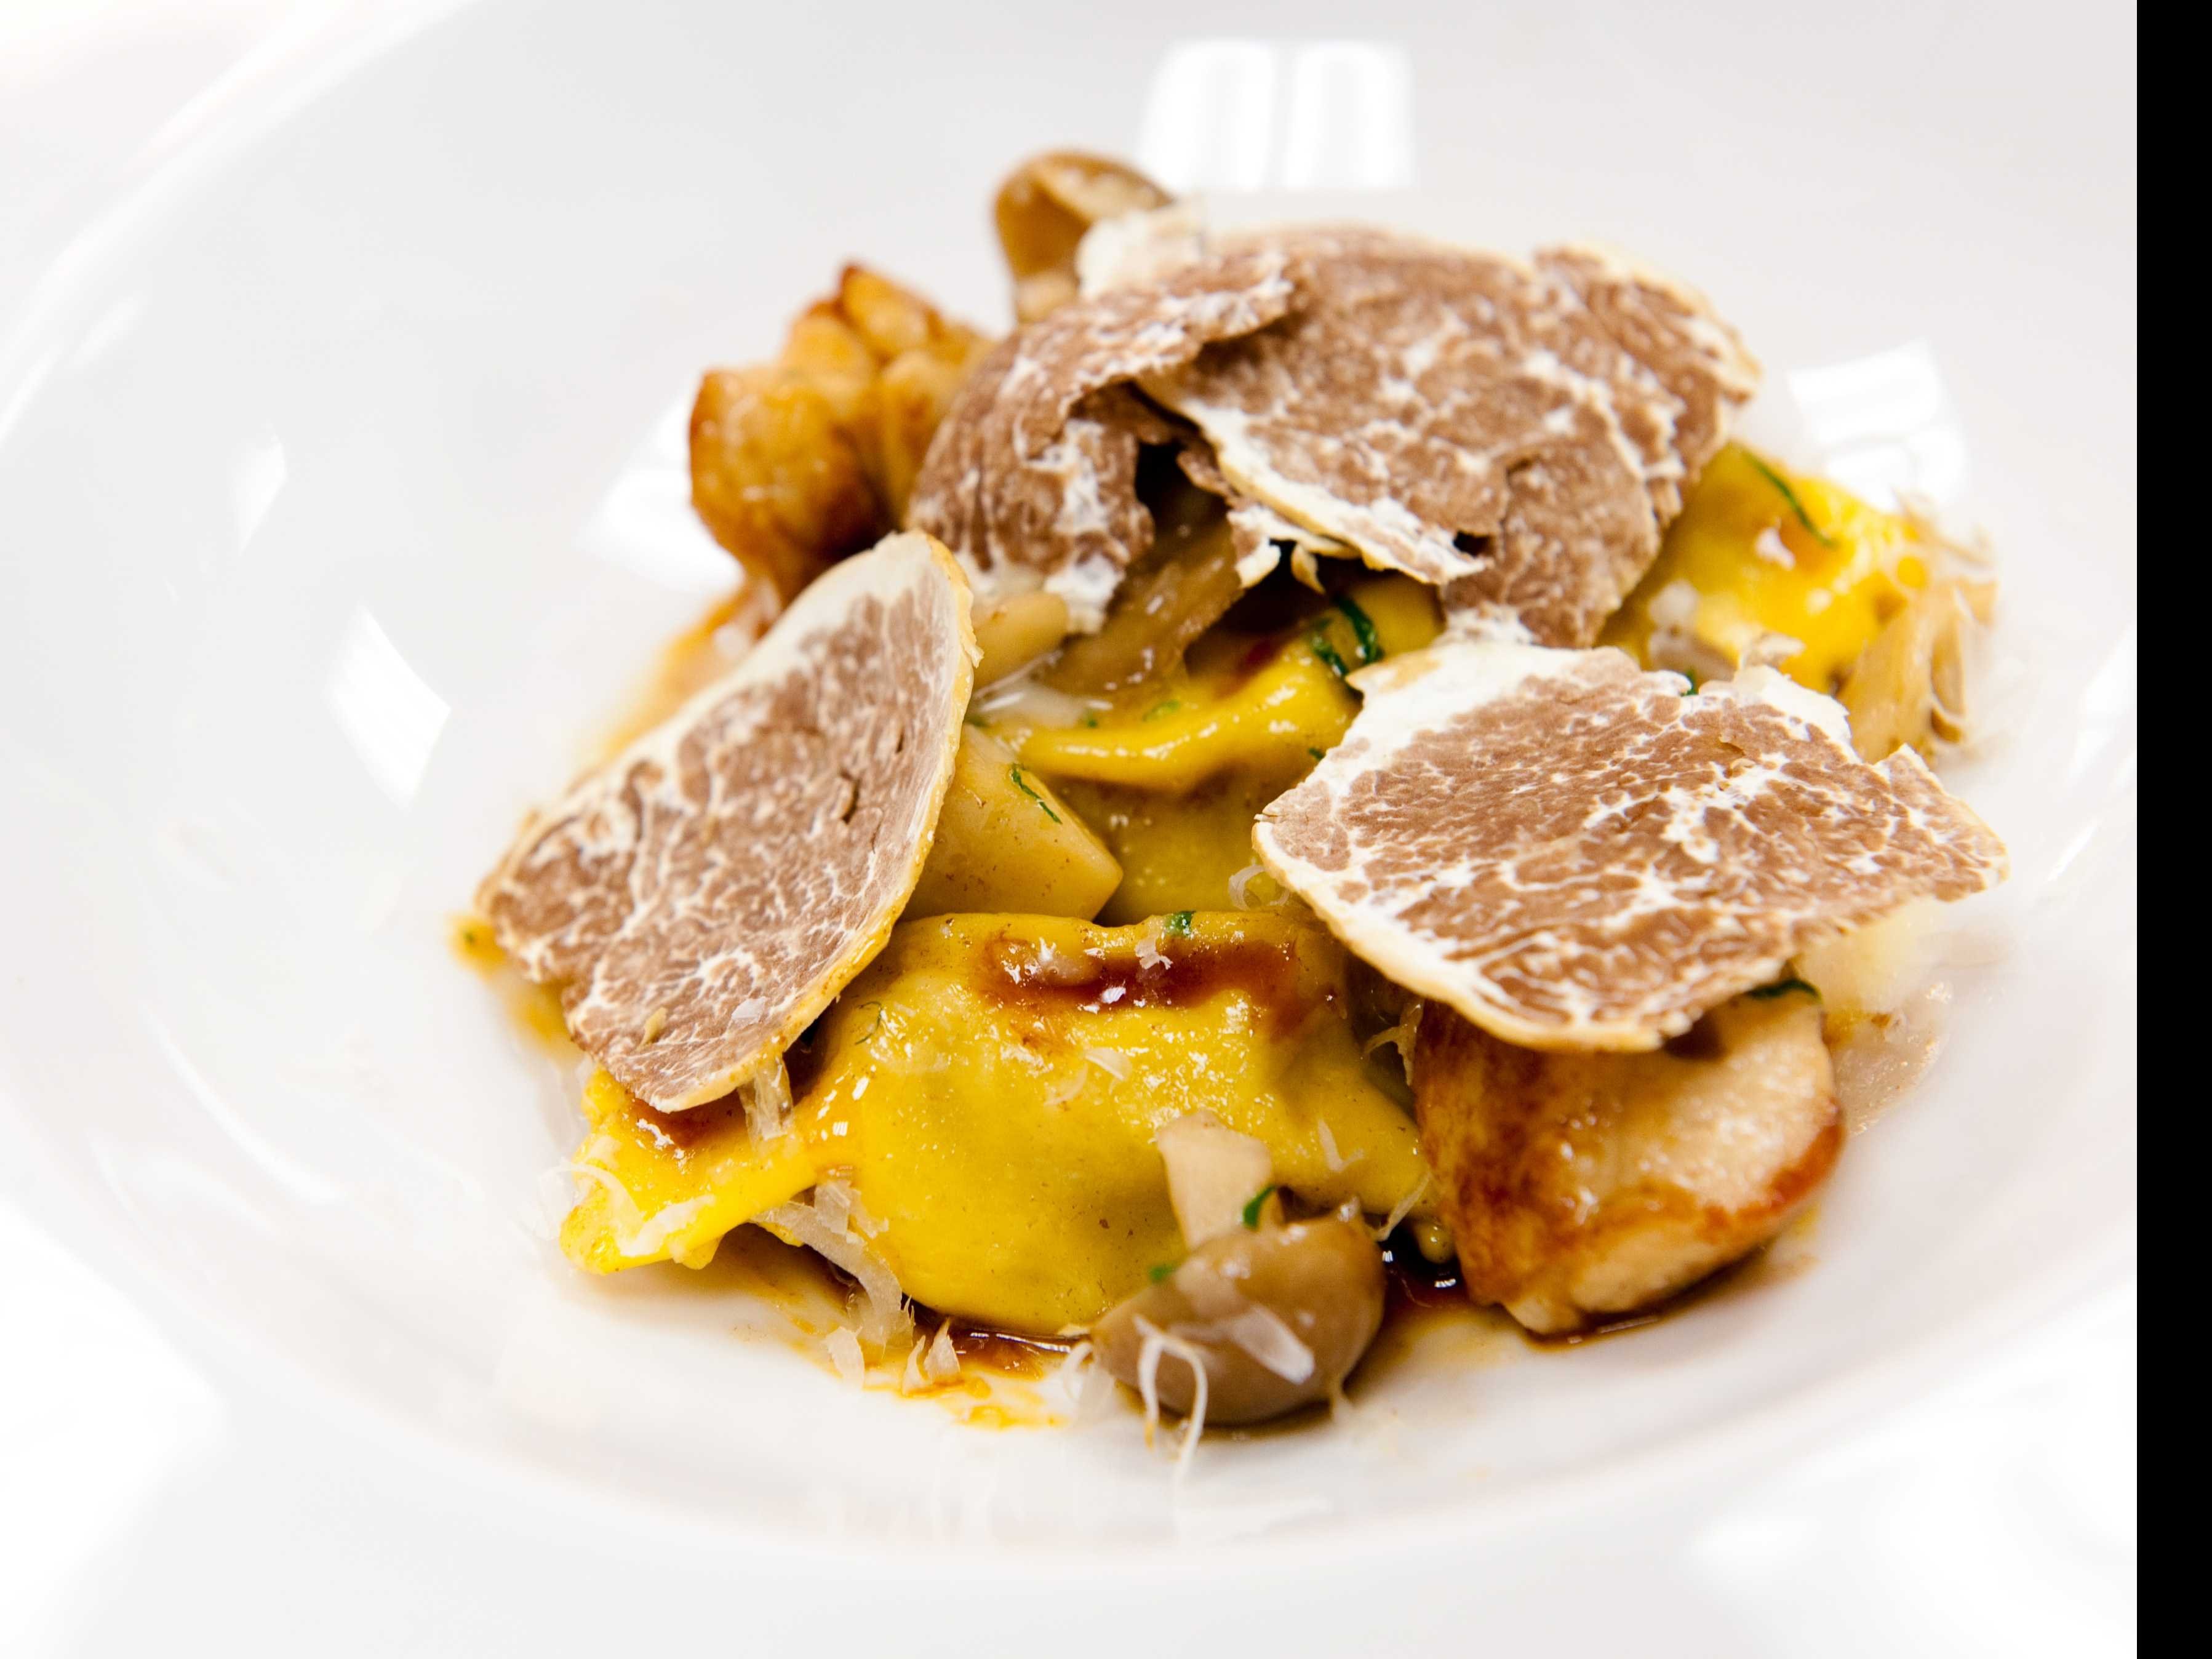 Don't Miss: NYC's White Truffle Week